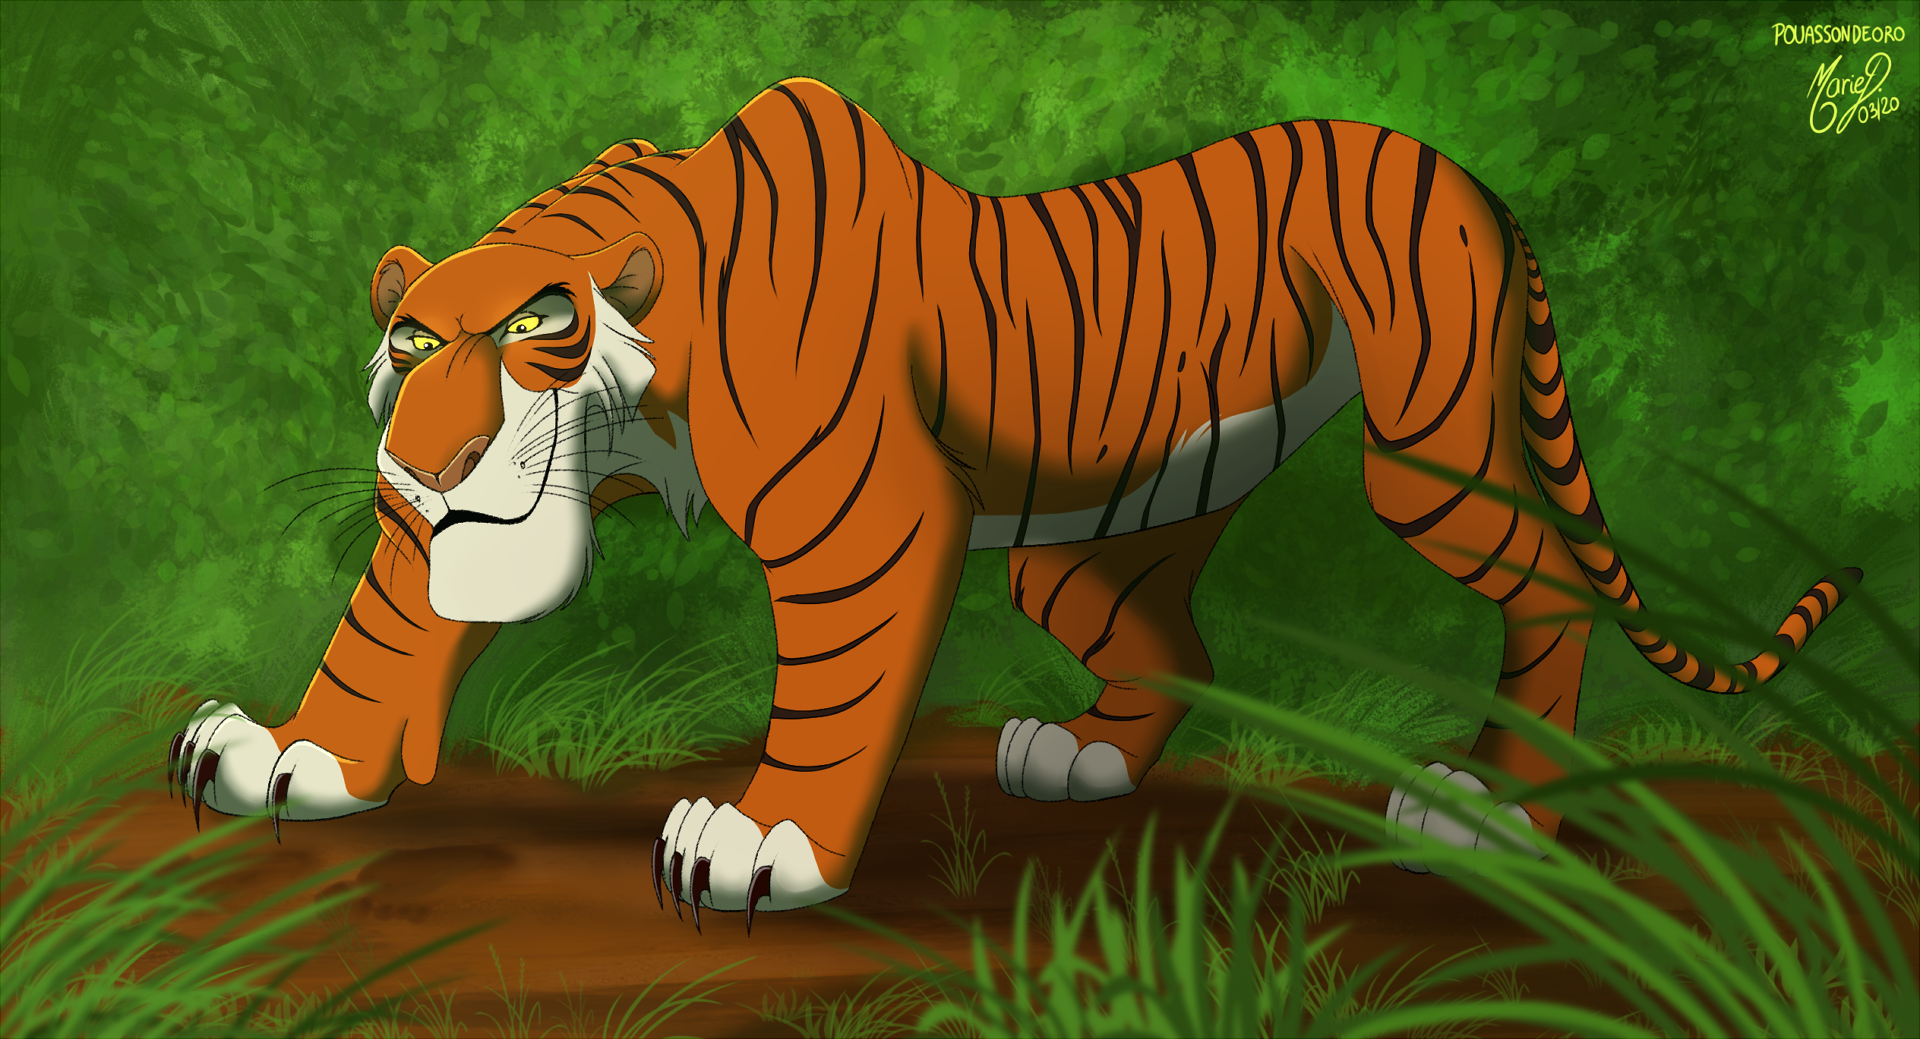 Shere Khan- ''Found you'' by PouassonDeOro on DeviantArt